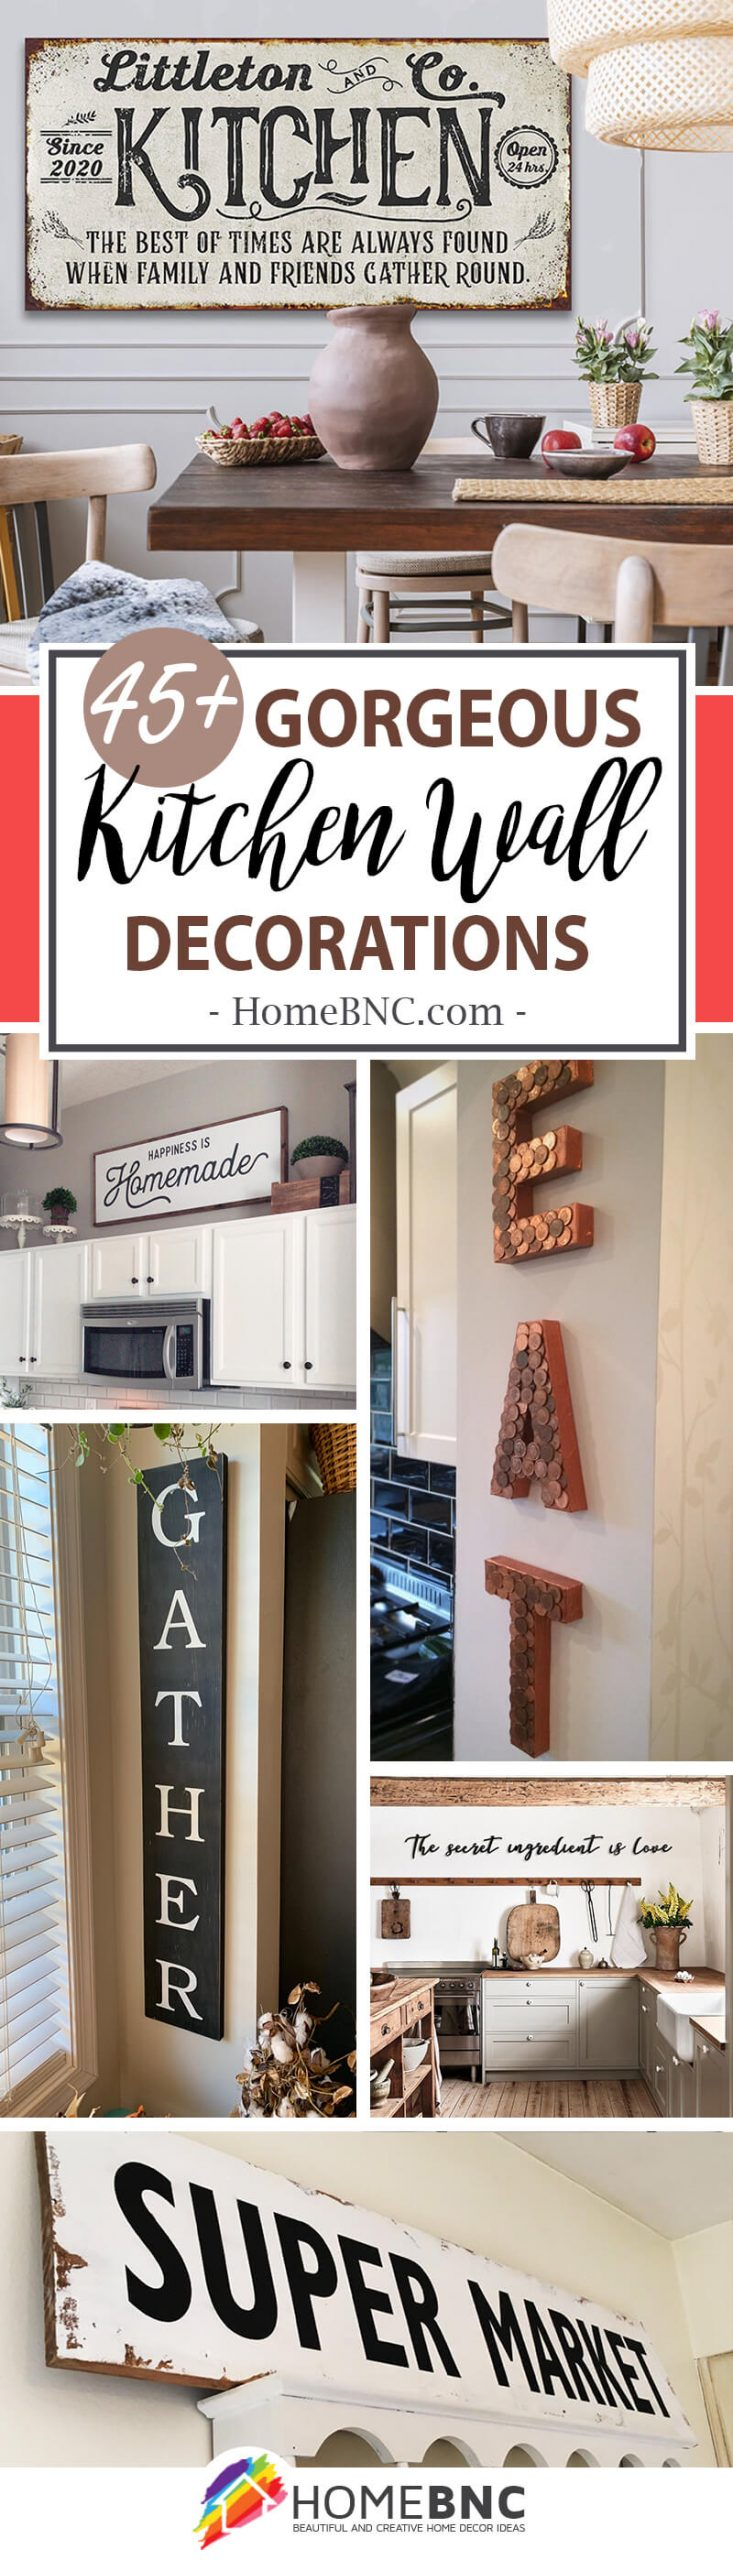 9+ Best Kitchen Wall Decor Ideas and Designs for 9